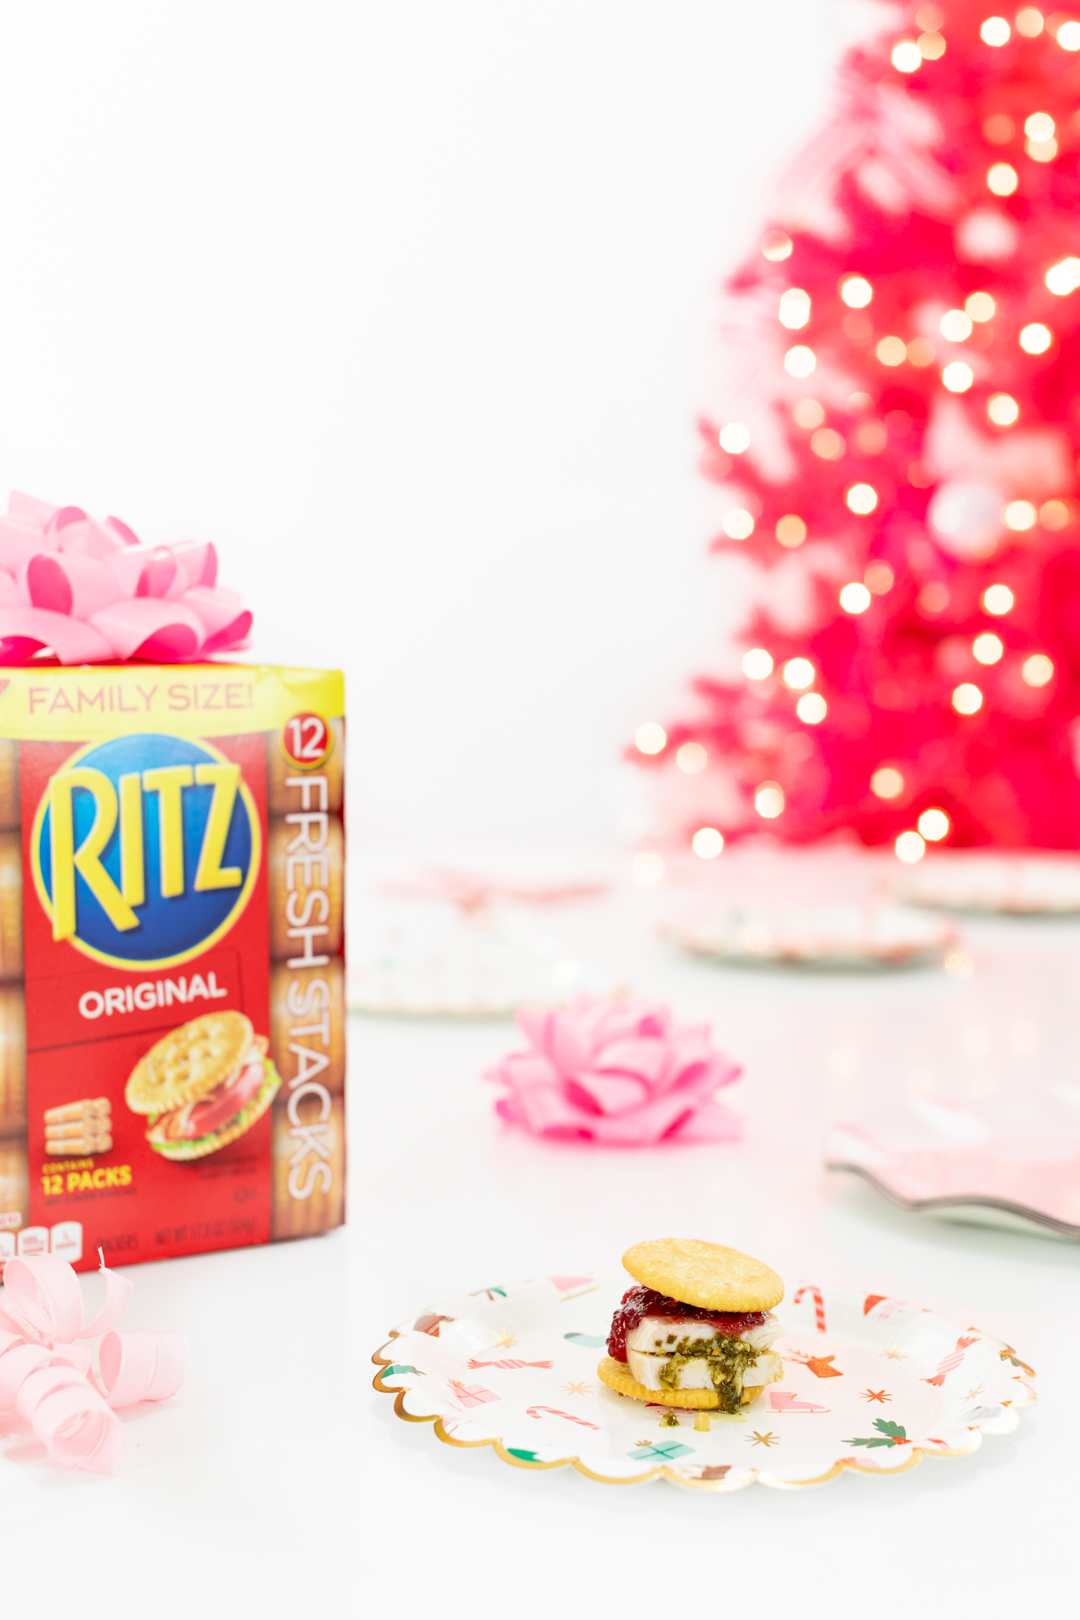 Ritz Cracker Box and Pink Christmas Tree